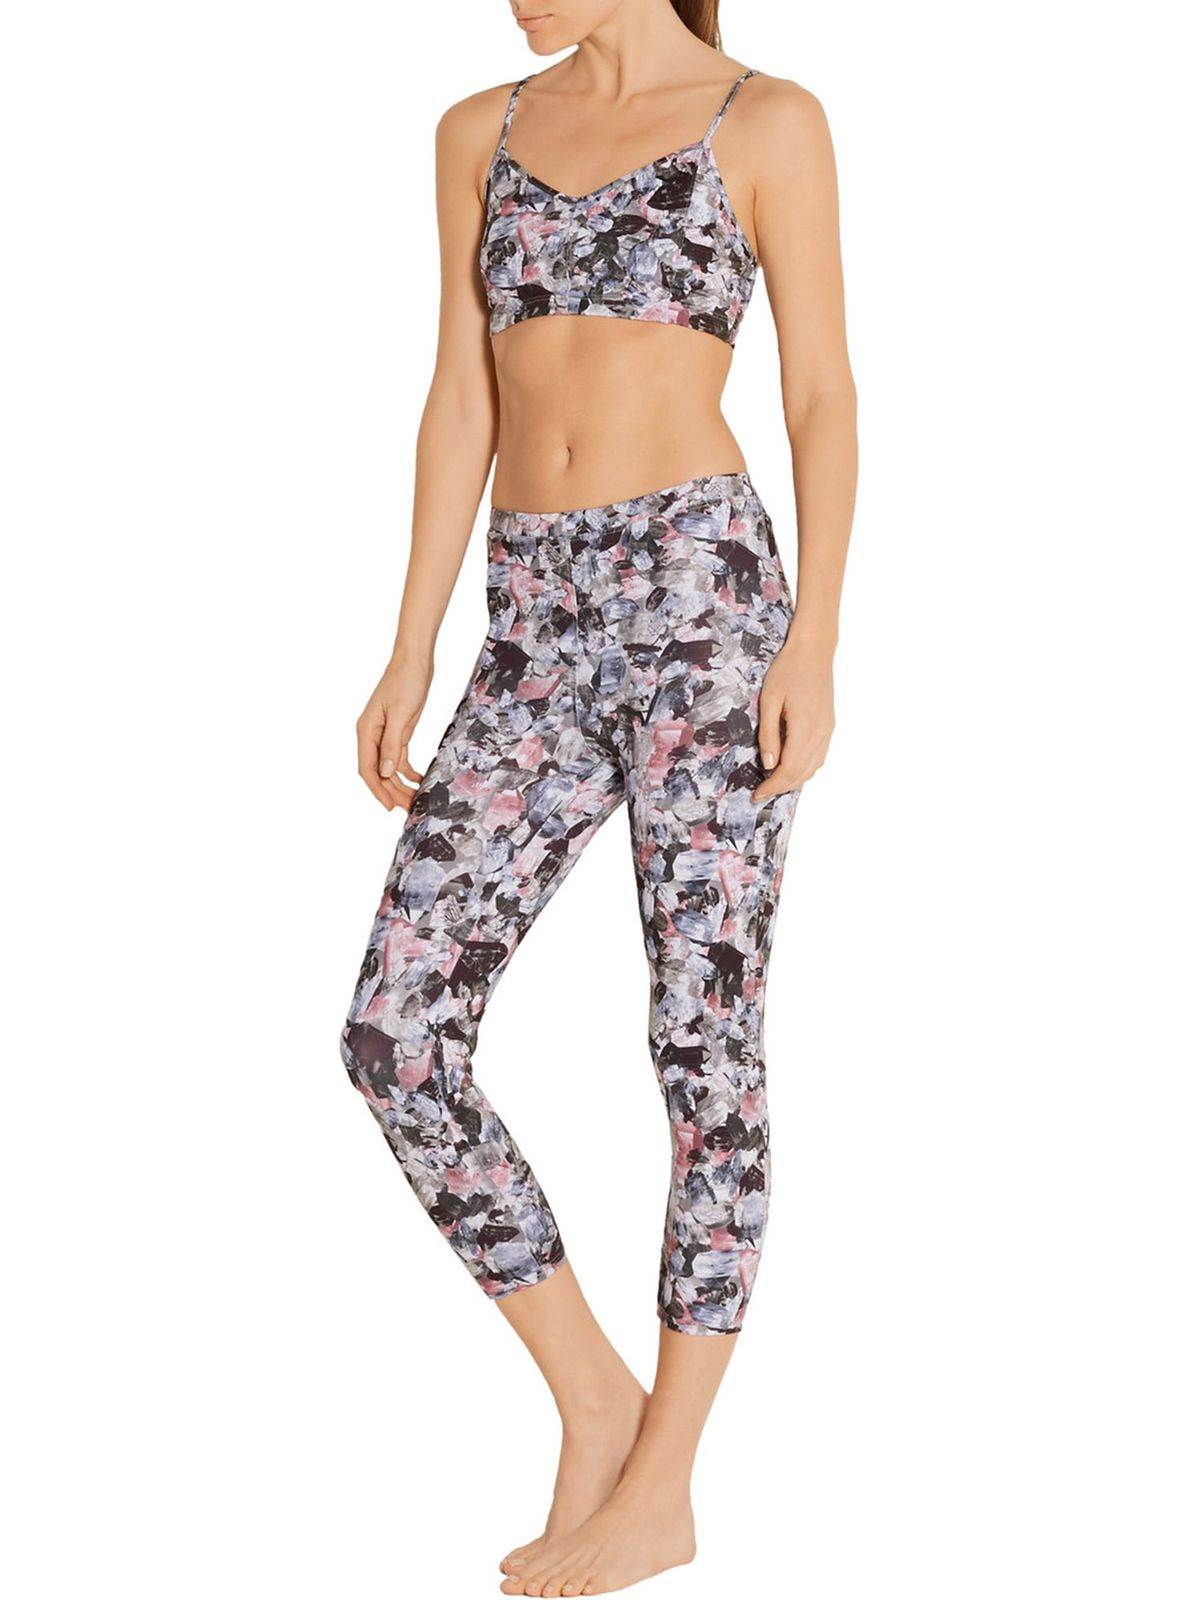 Live the Process Printed Sports Bra, $38.25, and Leggings, $65.25